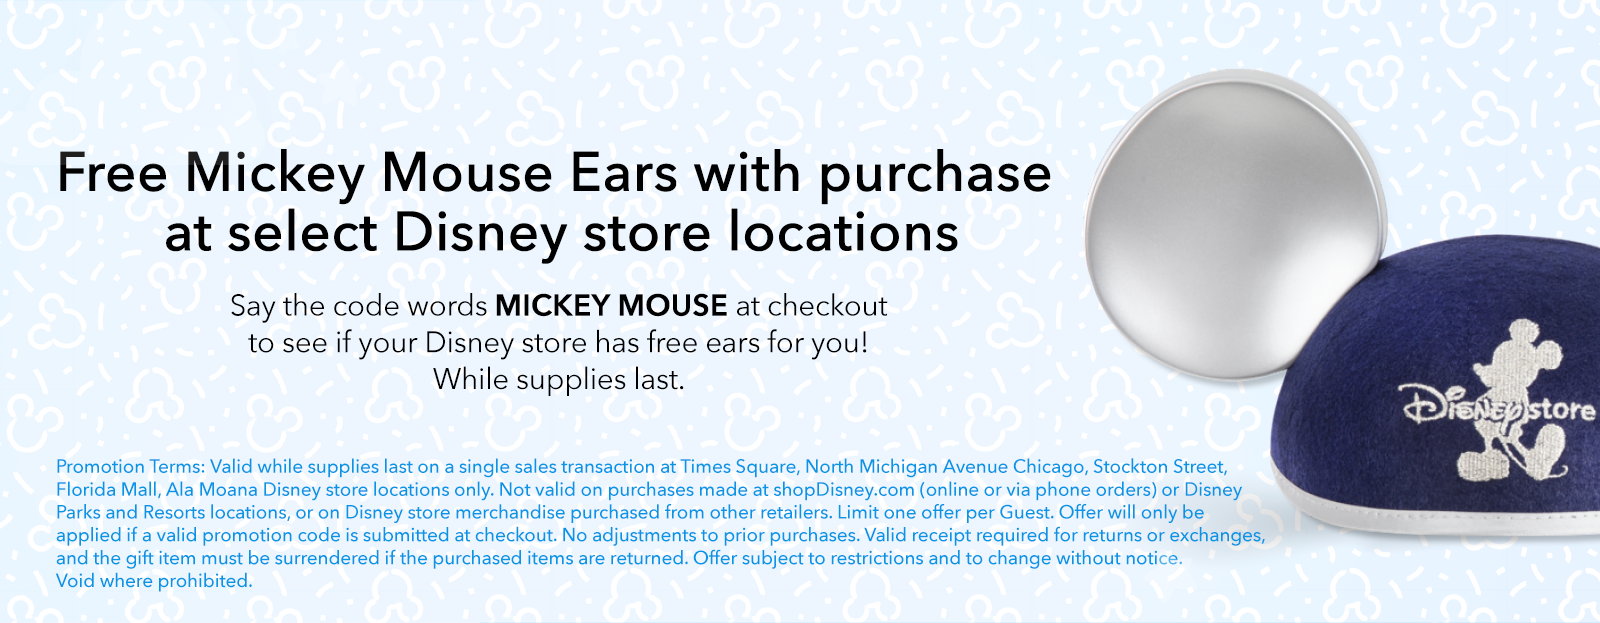 Free Mickey Mouse Ears with purchase at Disney Stores.